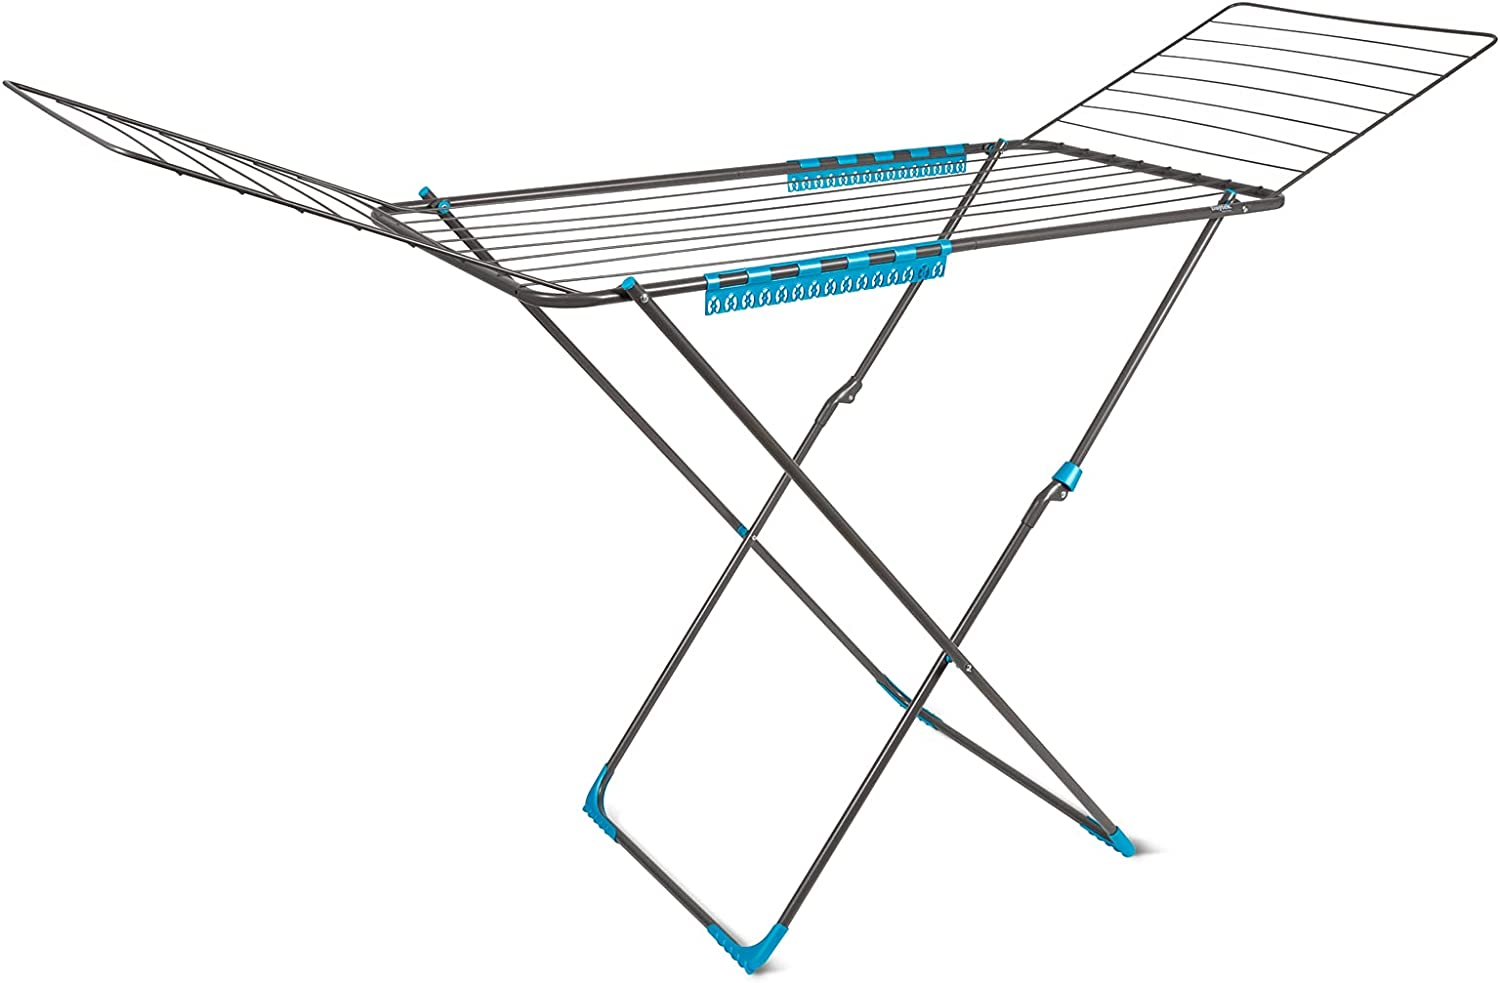 Daytek Winged Clothes Drying Gorgeous Rack 59 Feet Space Max 87% OFF